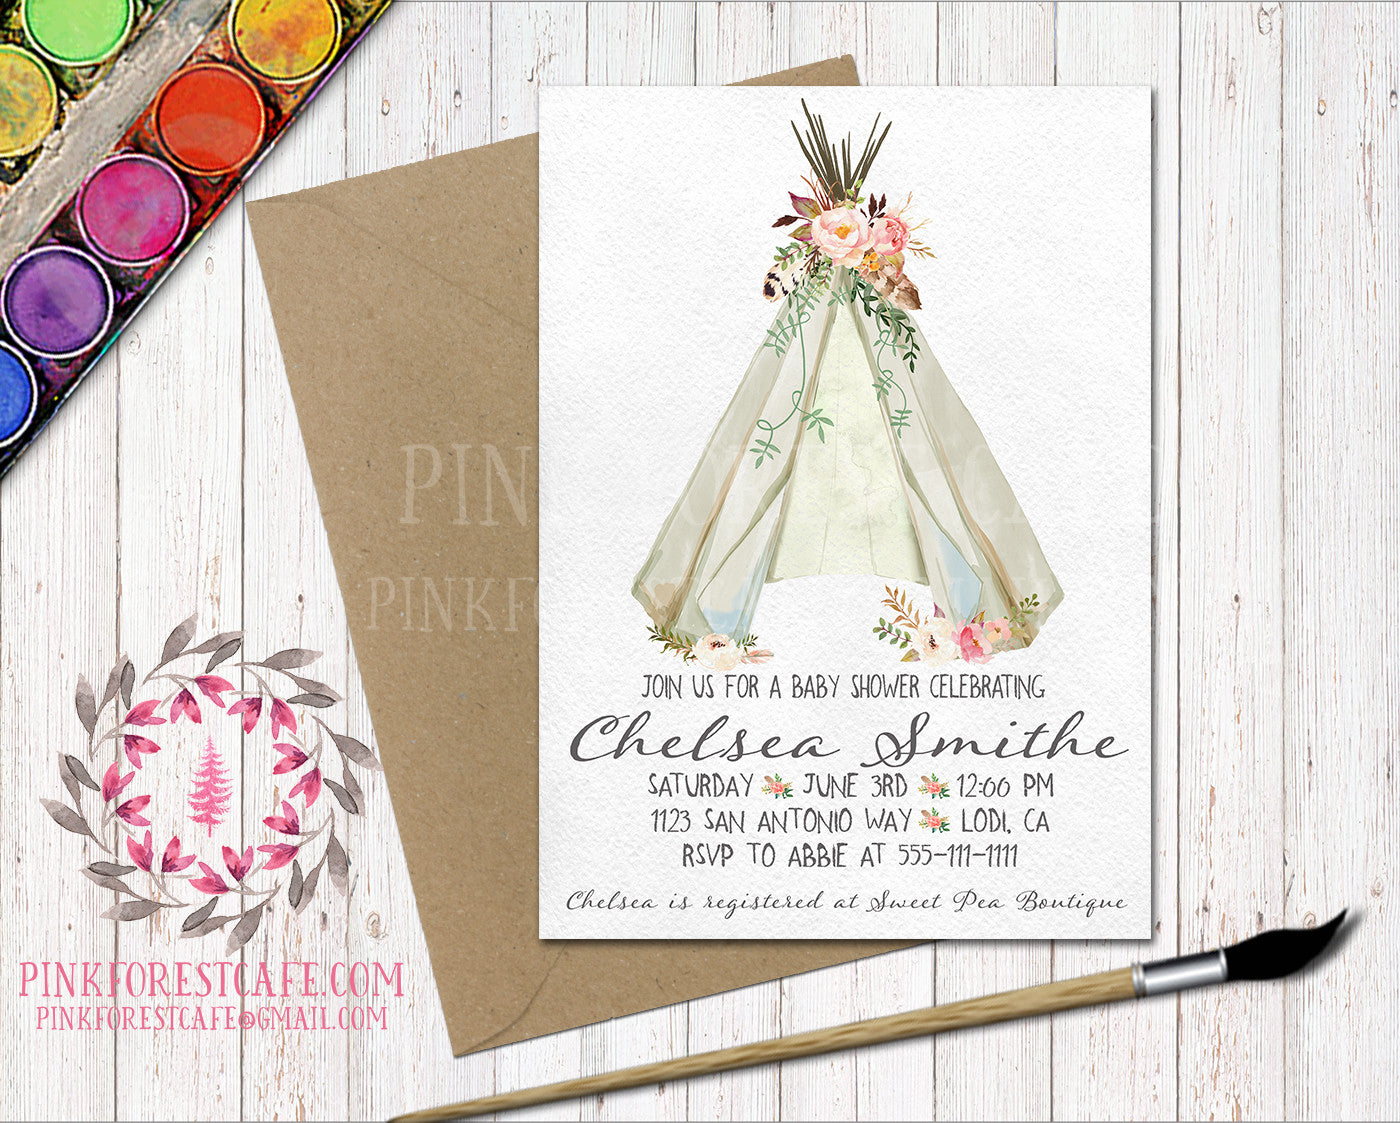 Boho Teepee Floral Watercolor Woodland Baby Bridal Shower Birthday Party Printable Invite Invitation